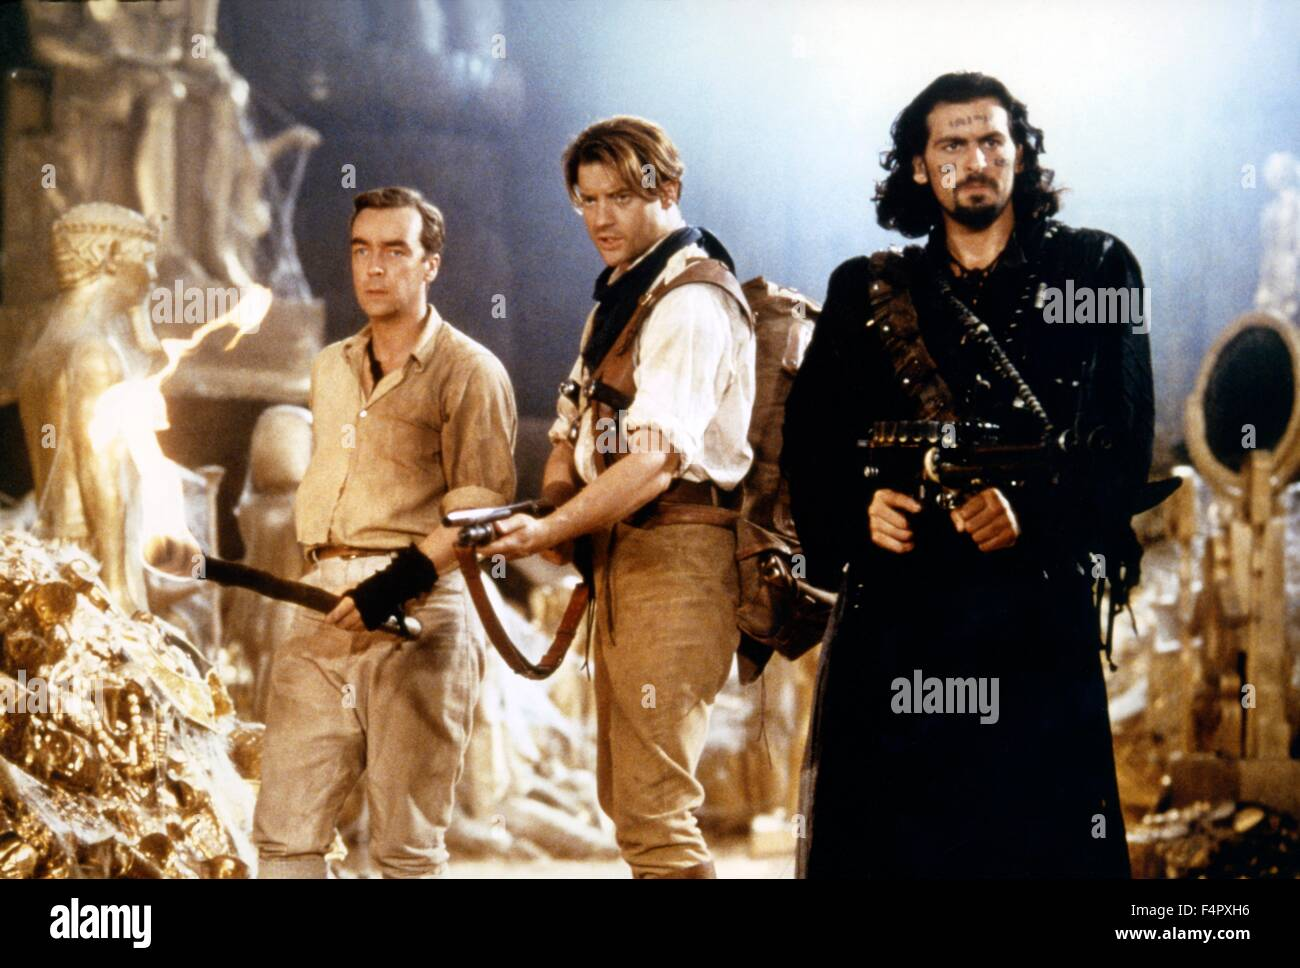 John Hannah, Brendan Fraser and Oded Fehr / The Mummy / 1999 / directed by Stephen Sommers / [Universal Pictures] - Stock Image